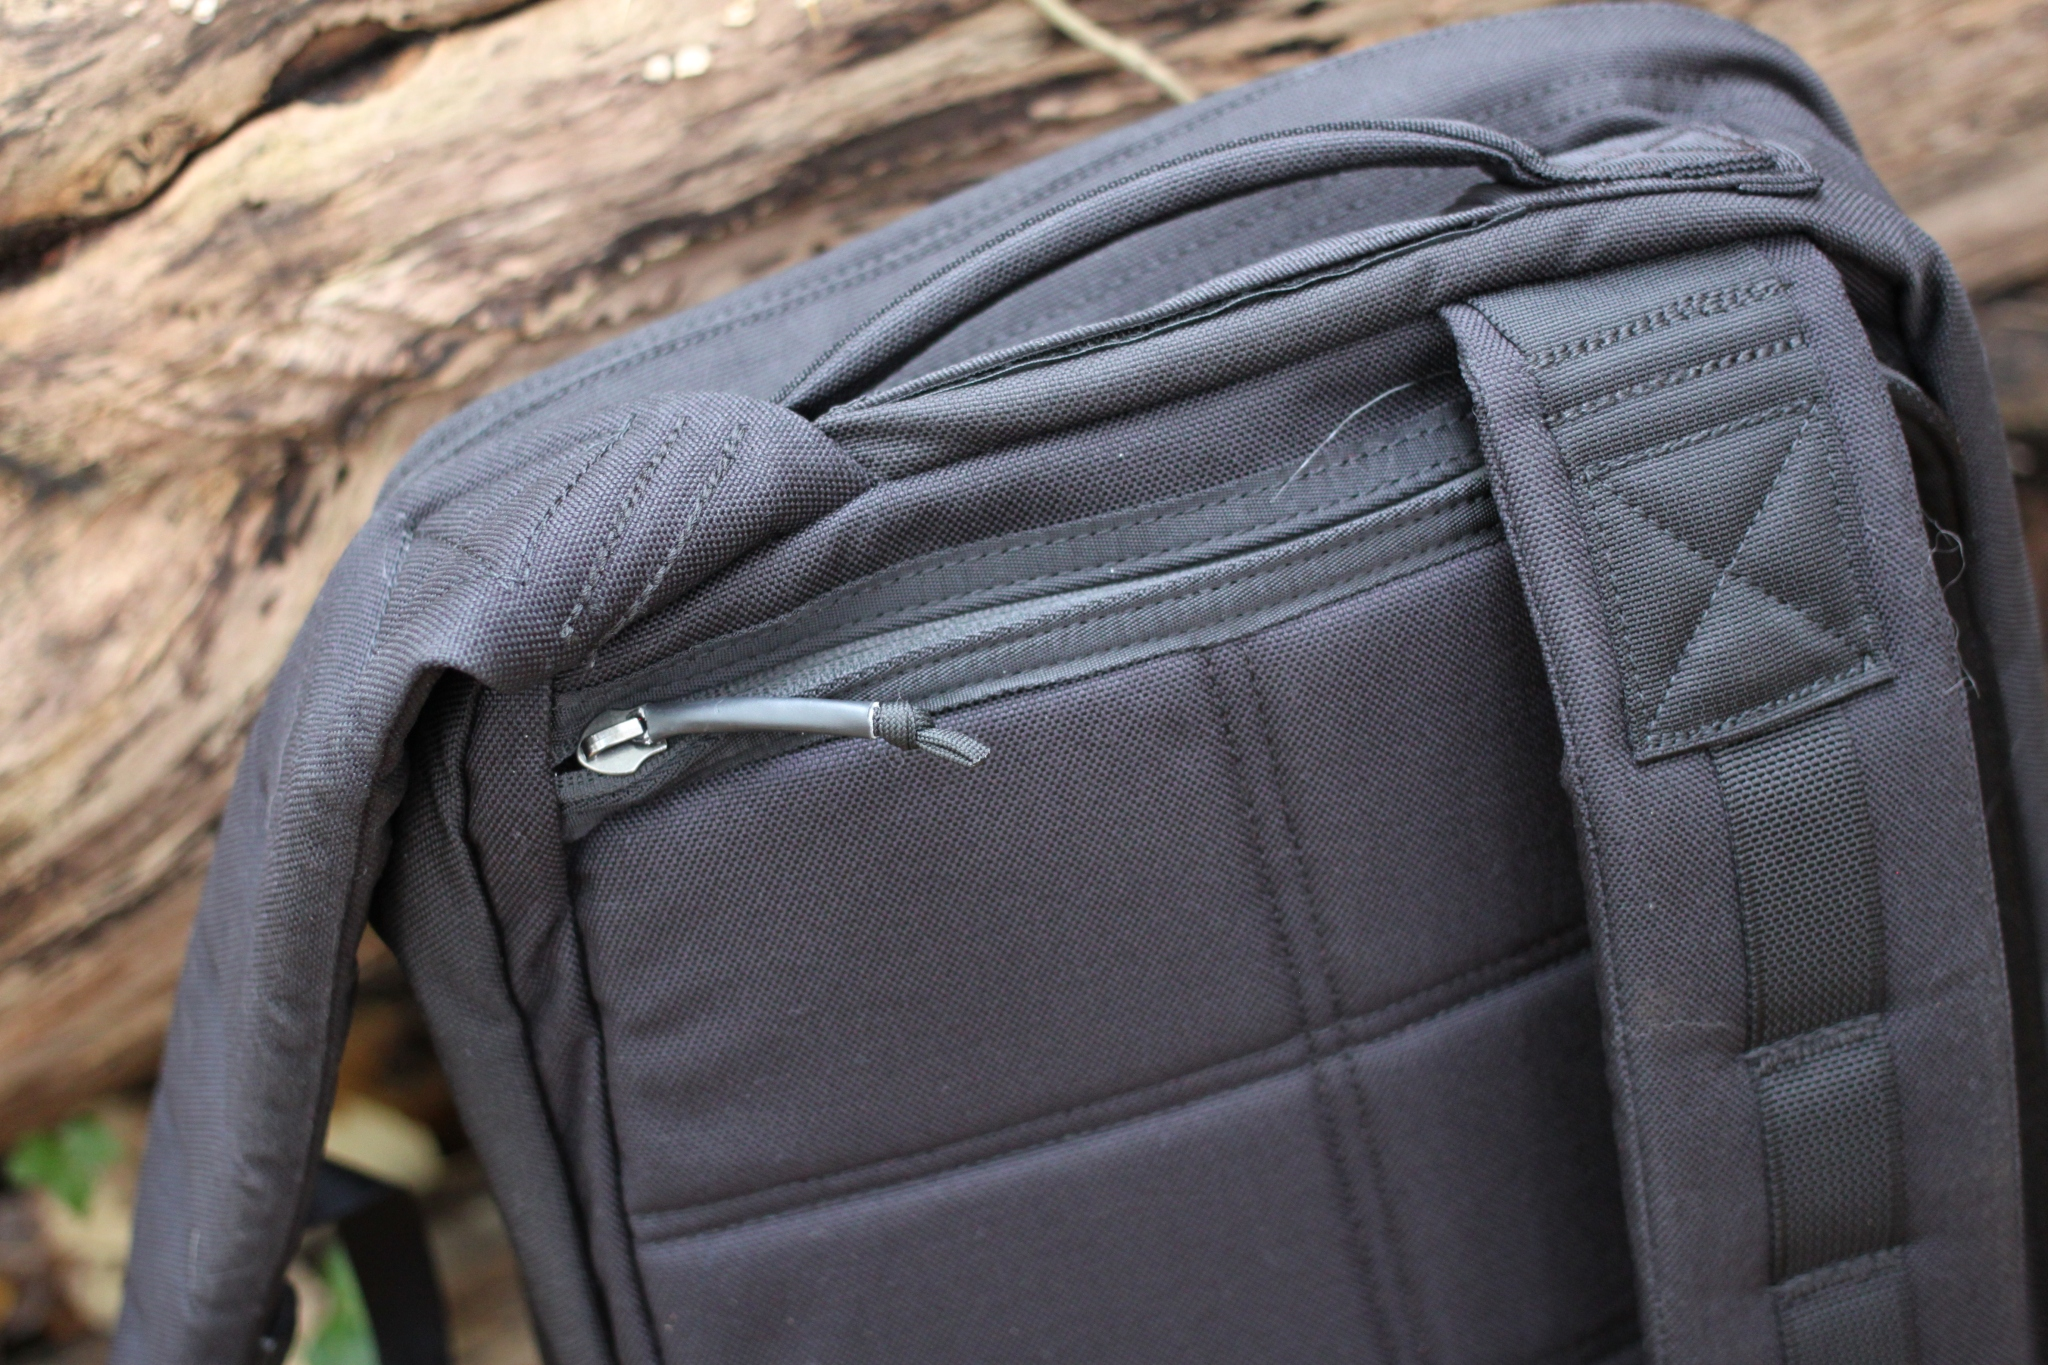 goruck gr1 review laptop compartment sleeve